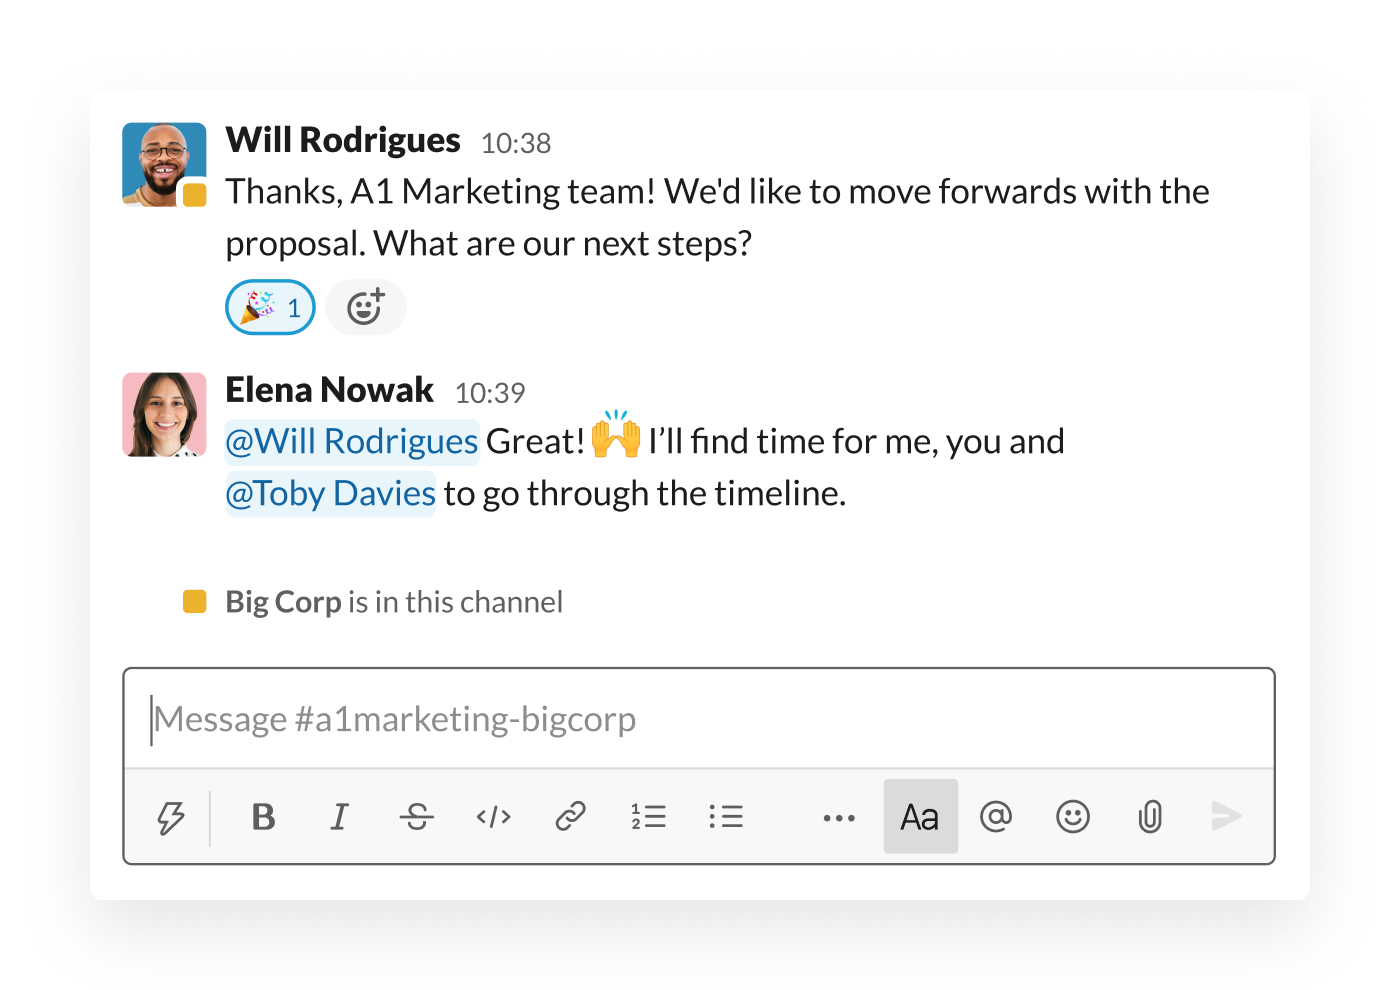 Two organisations move forwards with a proposal in a shared Slack channel